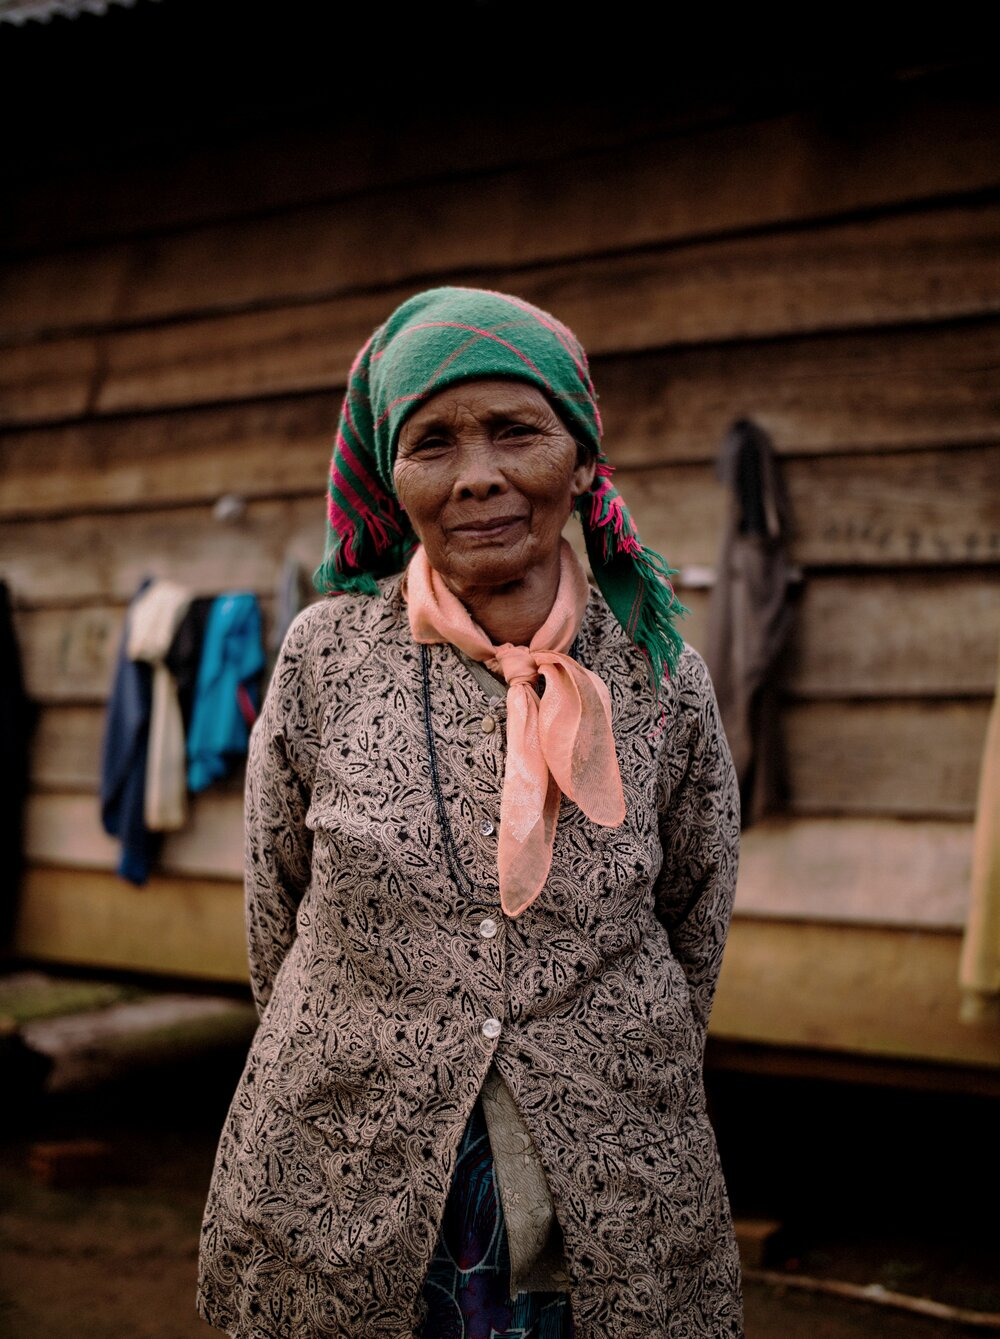 dalat people (7 of 14).JPG